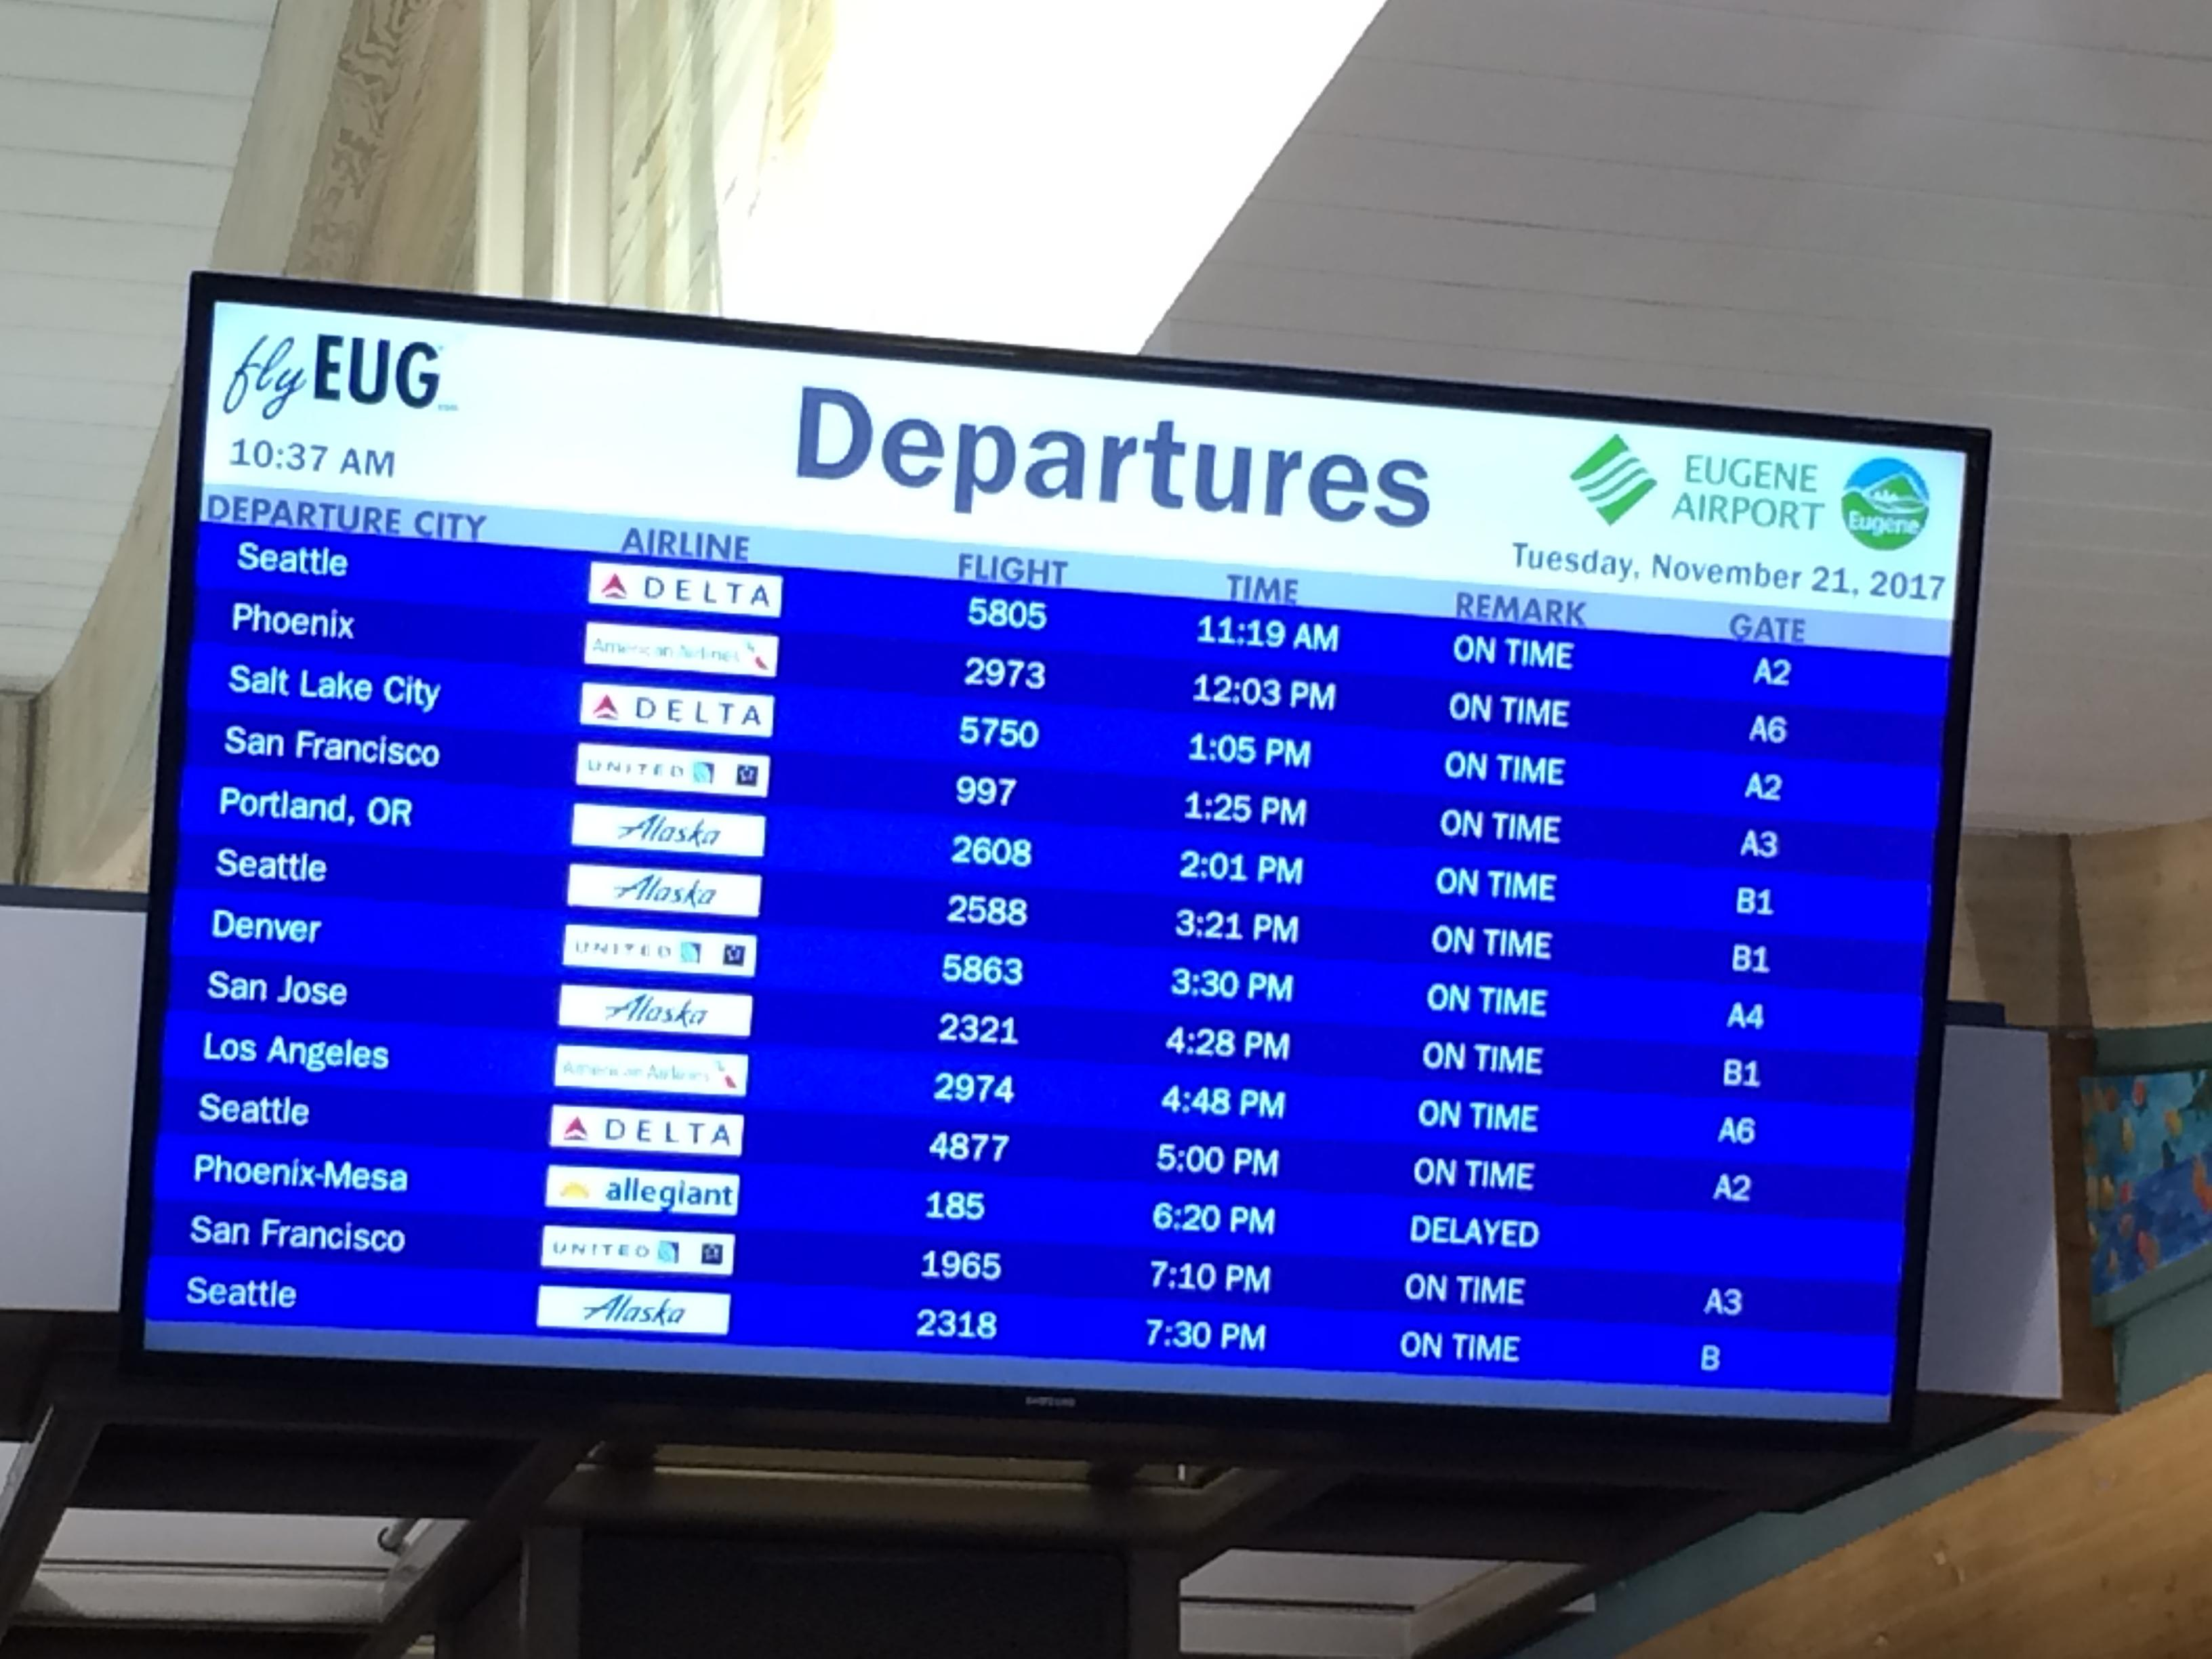 Eugene Airport expects more than 21,000 travelers for holiday weekend. Photo by Audrey Weil.